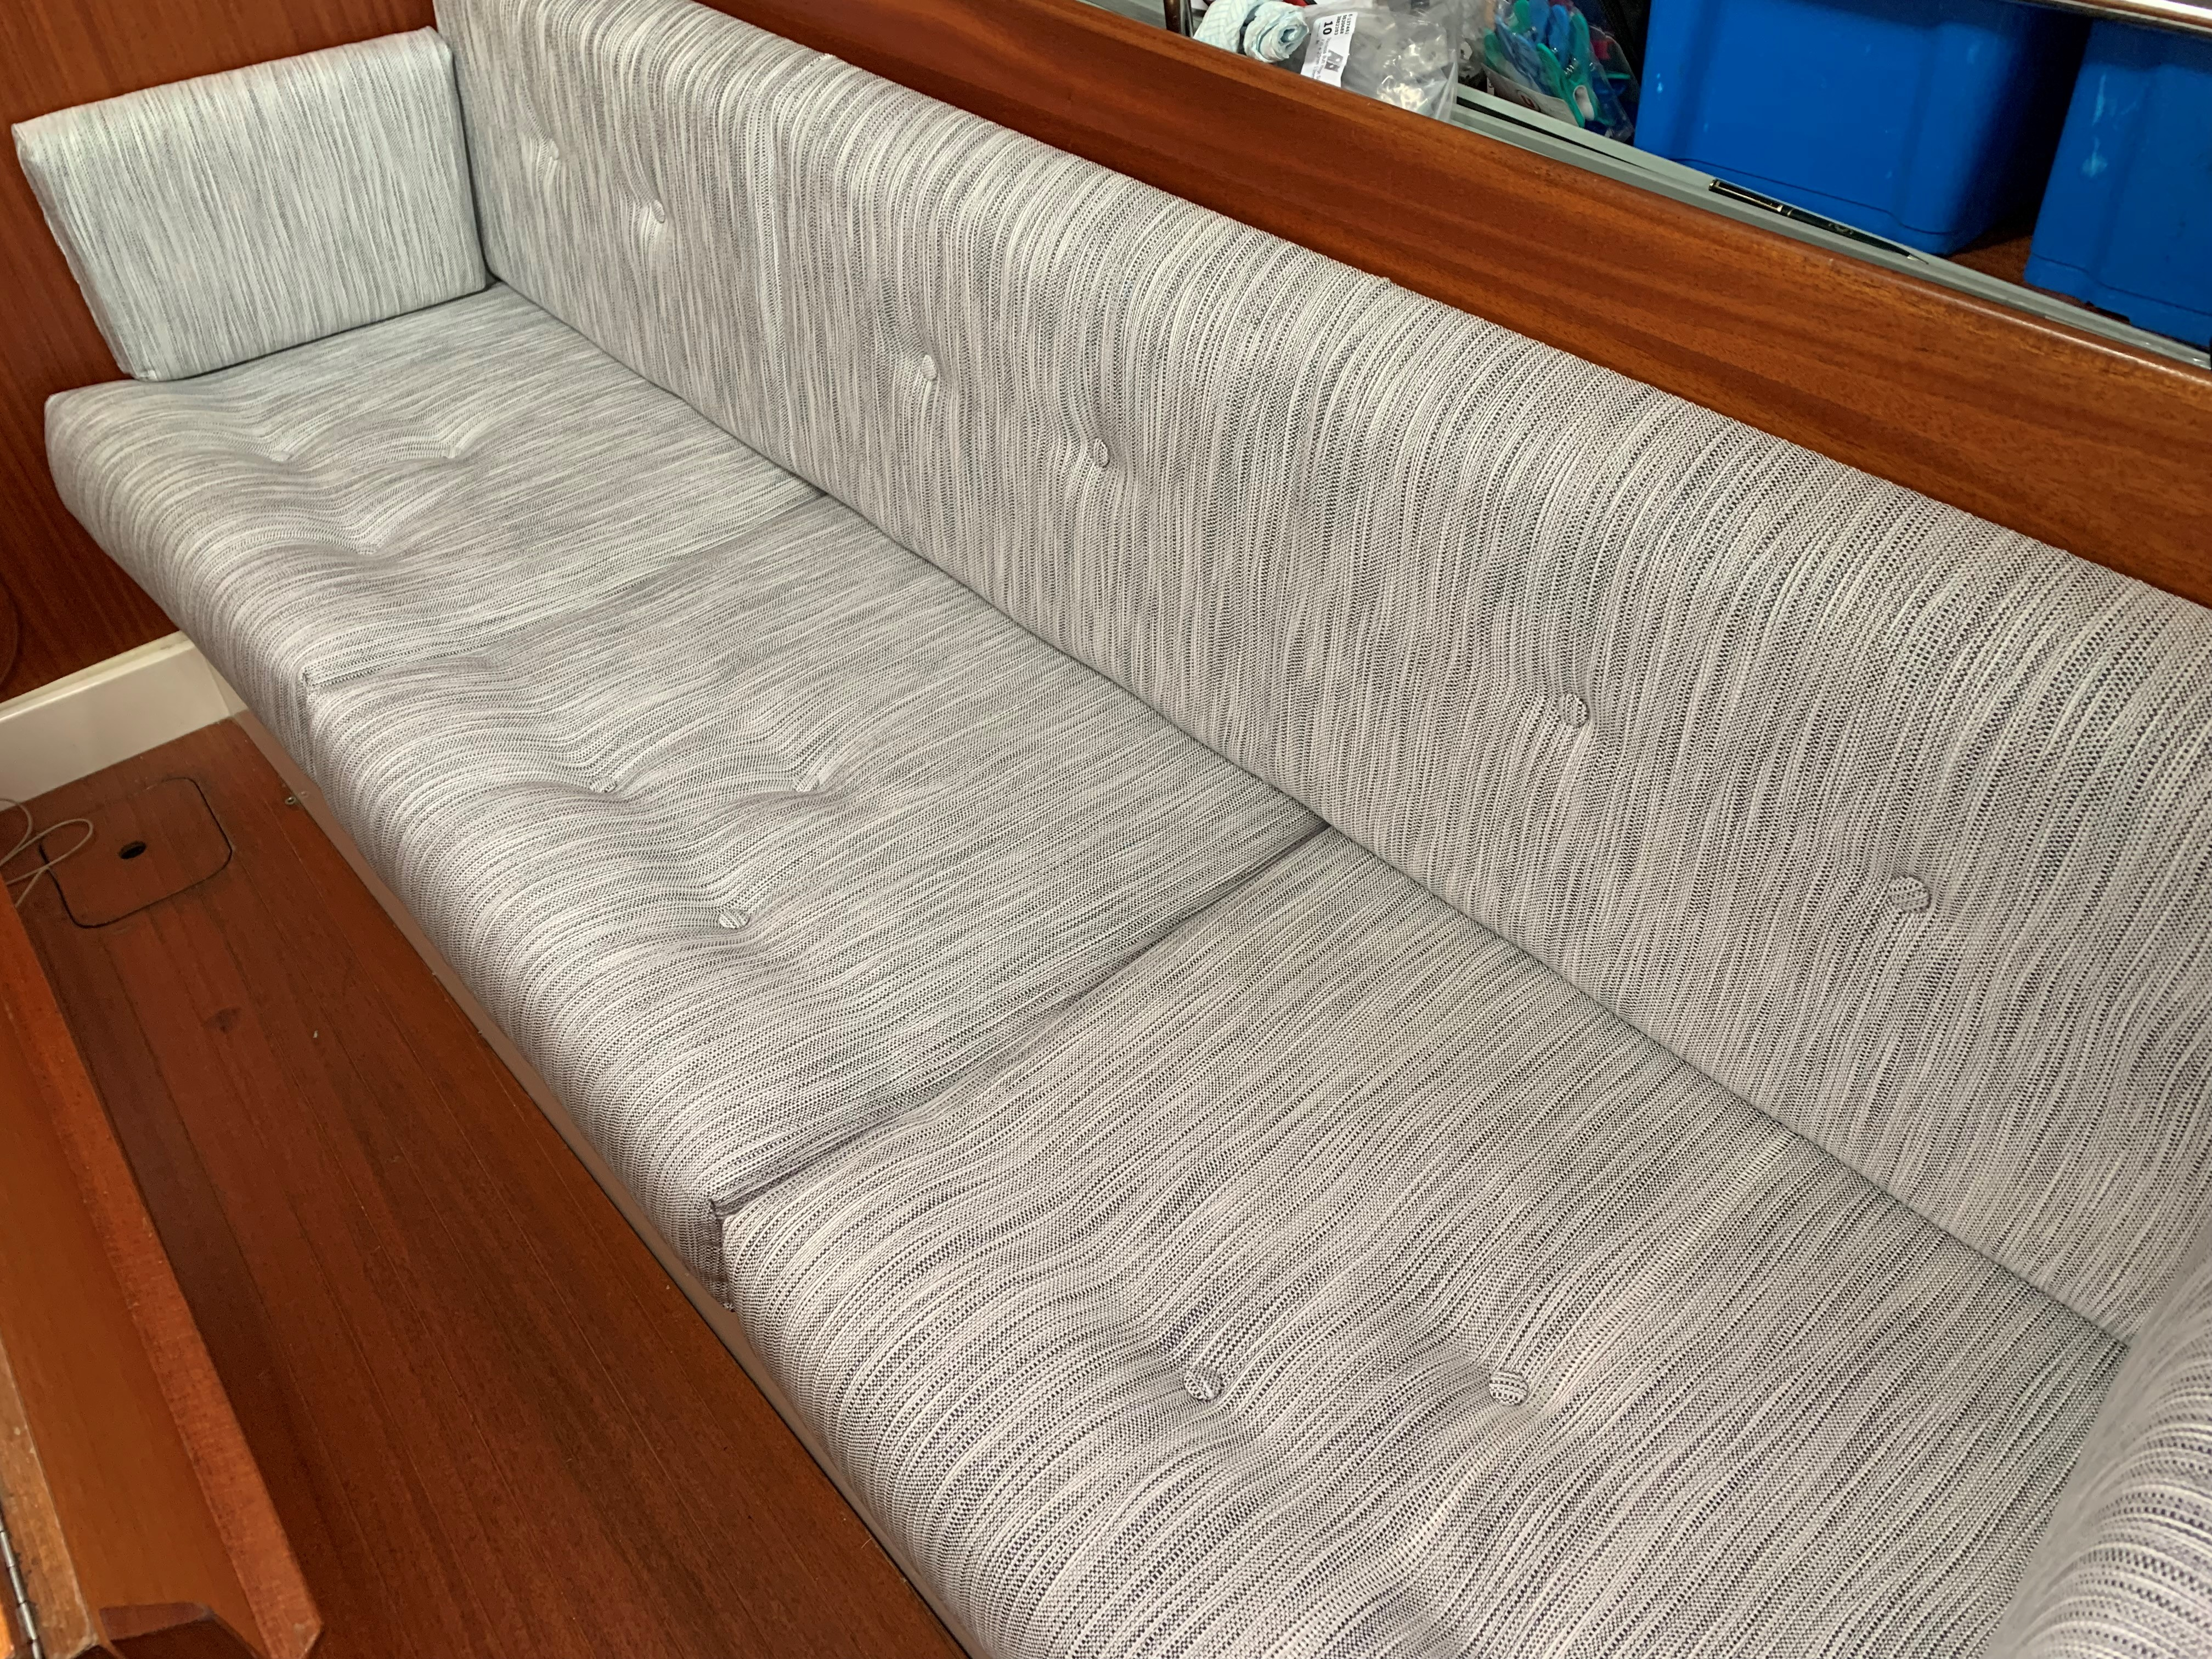 Marine Bedding Boat Upholstery - Patterned Saloon Boat Upholstery